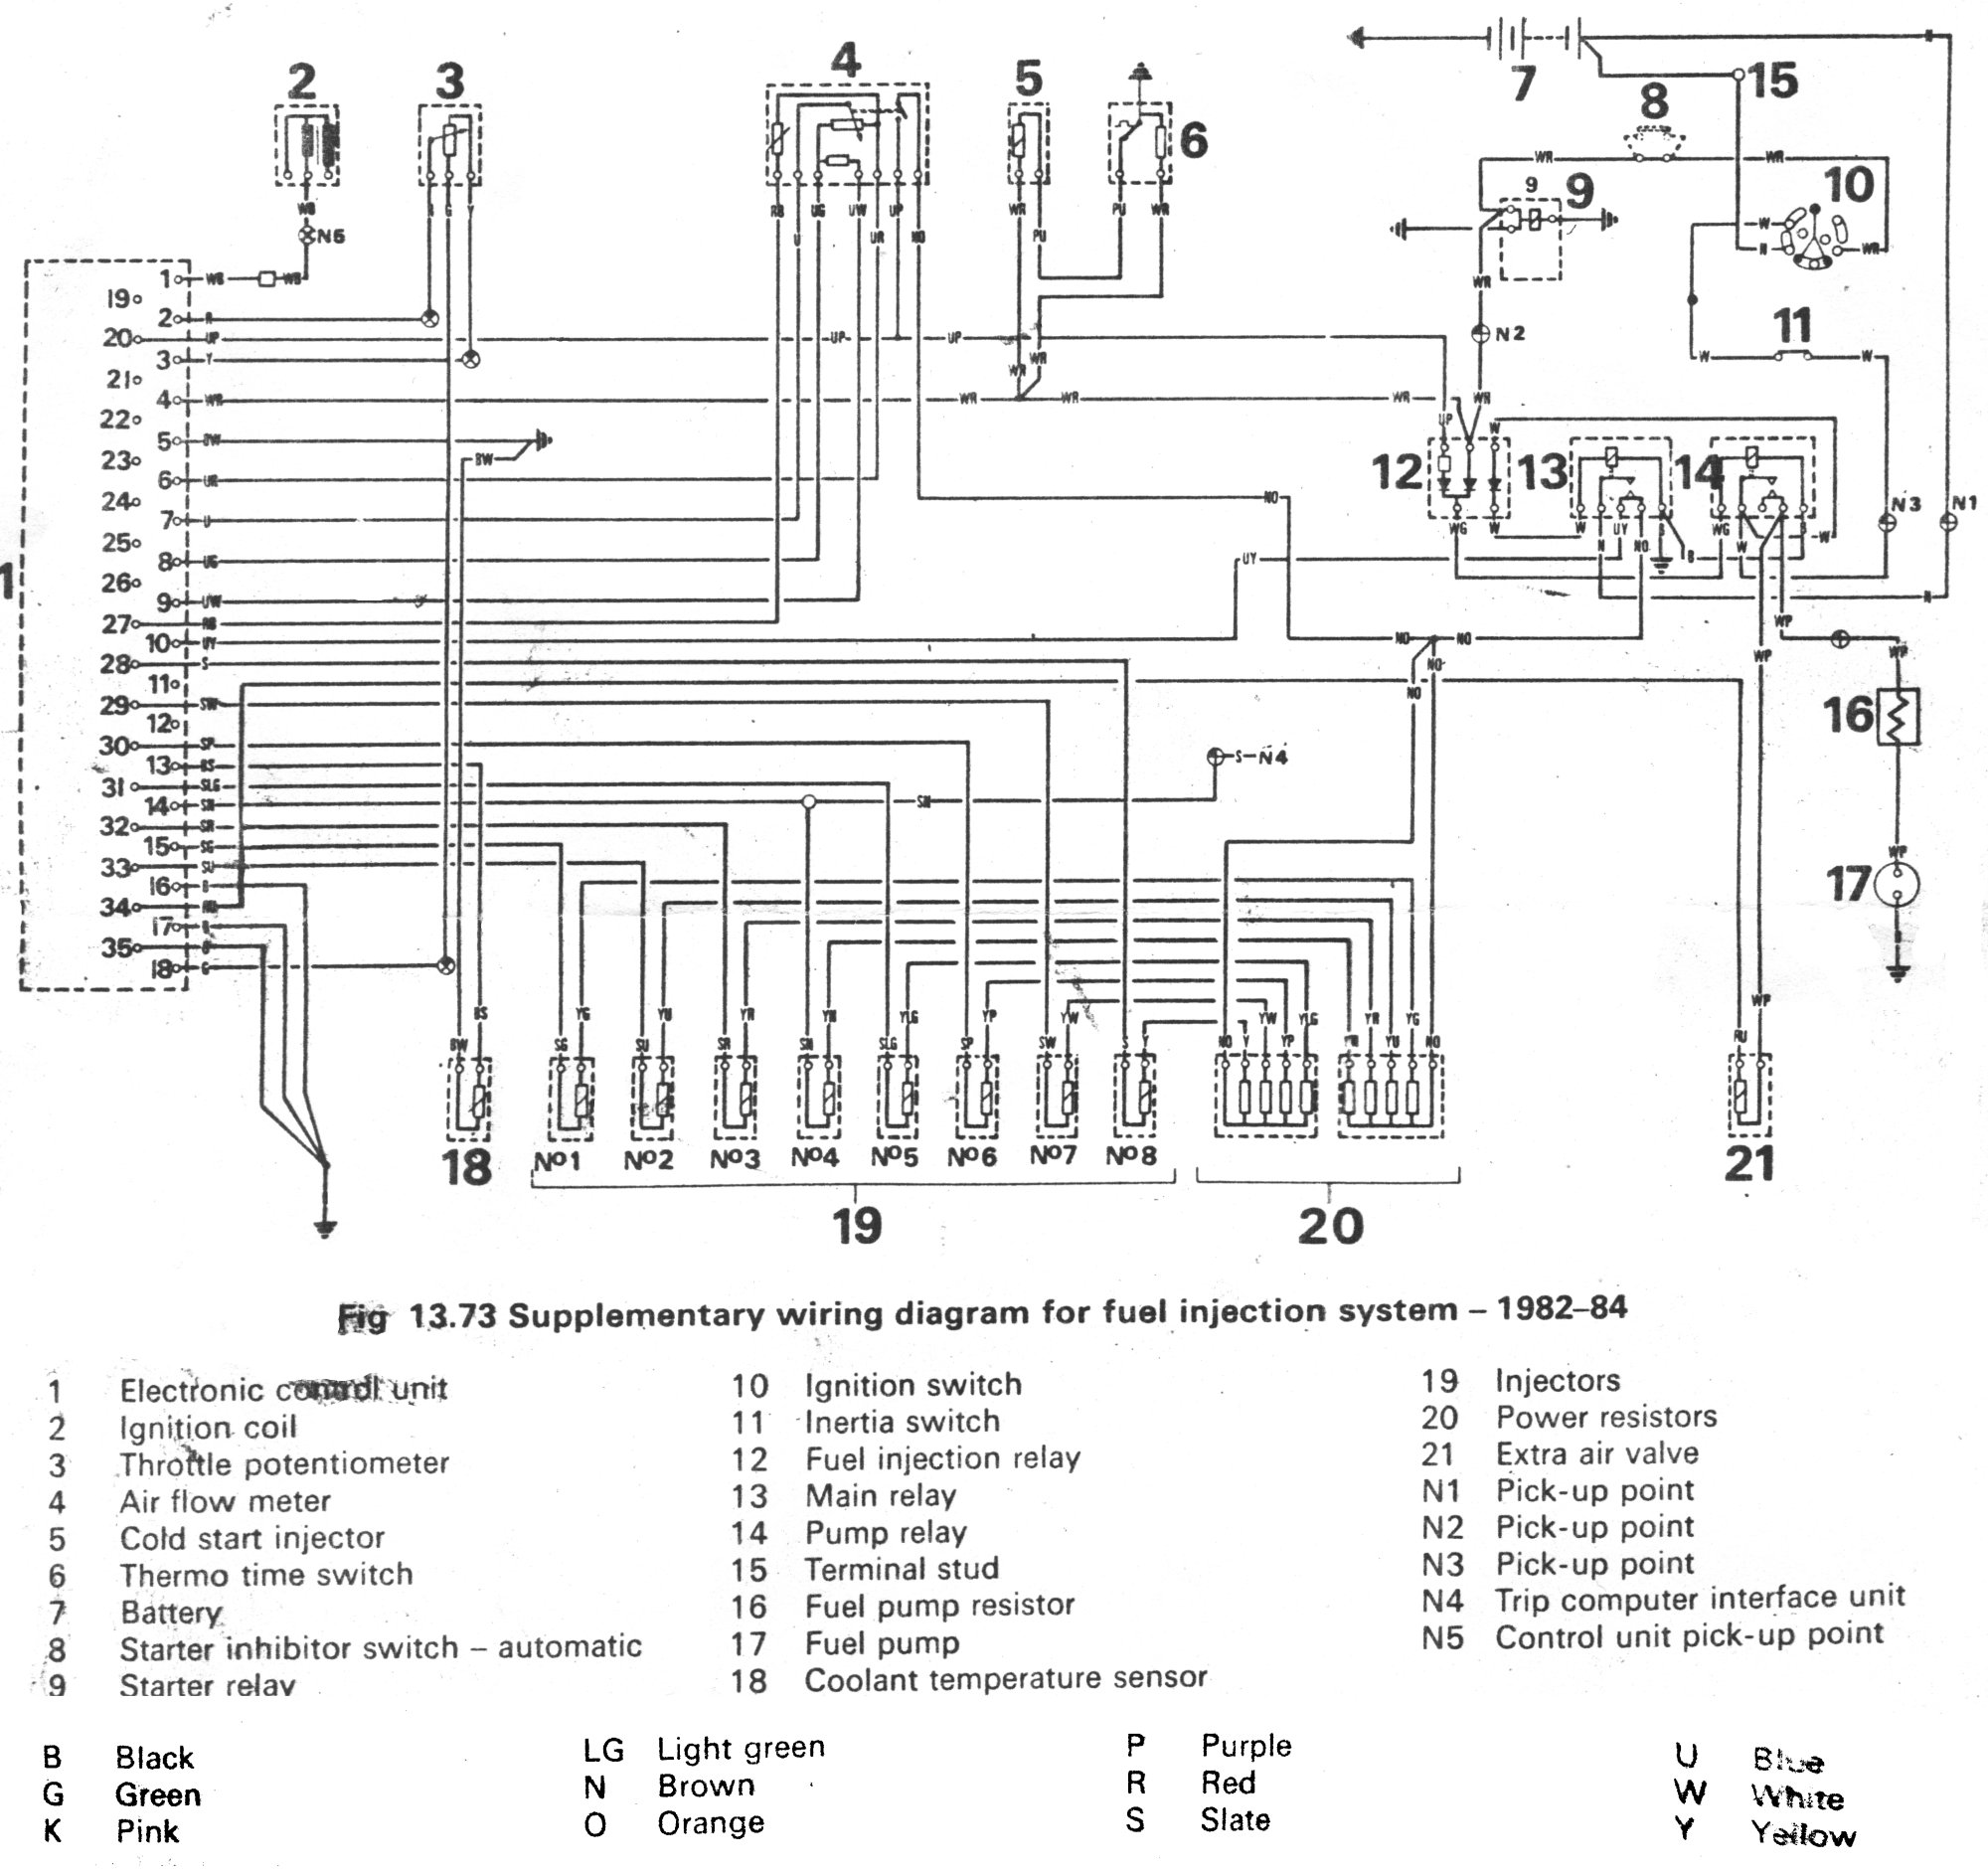 1999 ford ranger xlt fuse box diagram TgqcMDc wiring diagram for car 1998 ford f 150 wiring diagram 1999 ford ranger ignition wiring diagram at webbmarketing.co